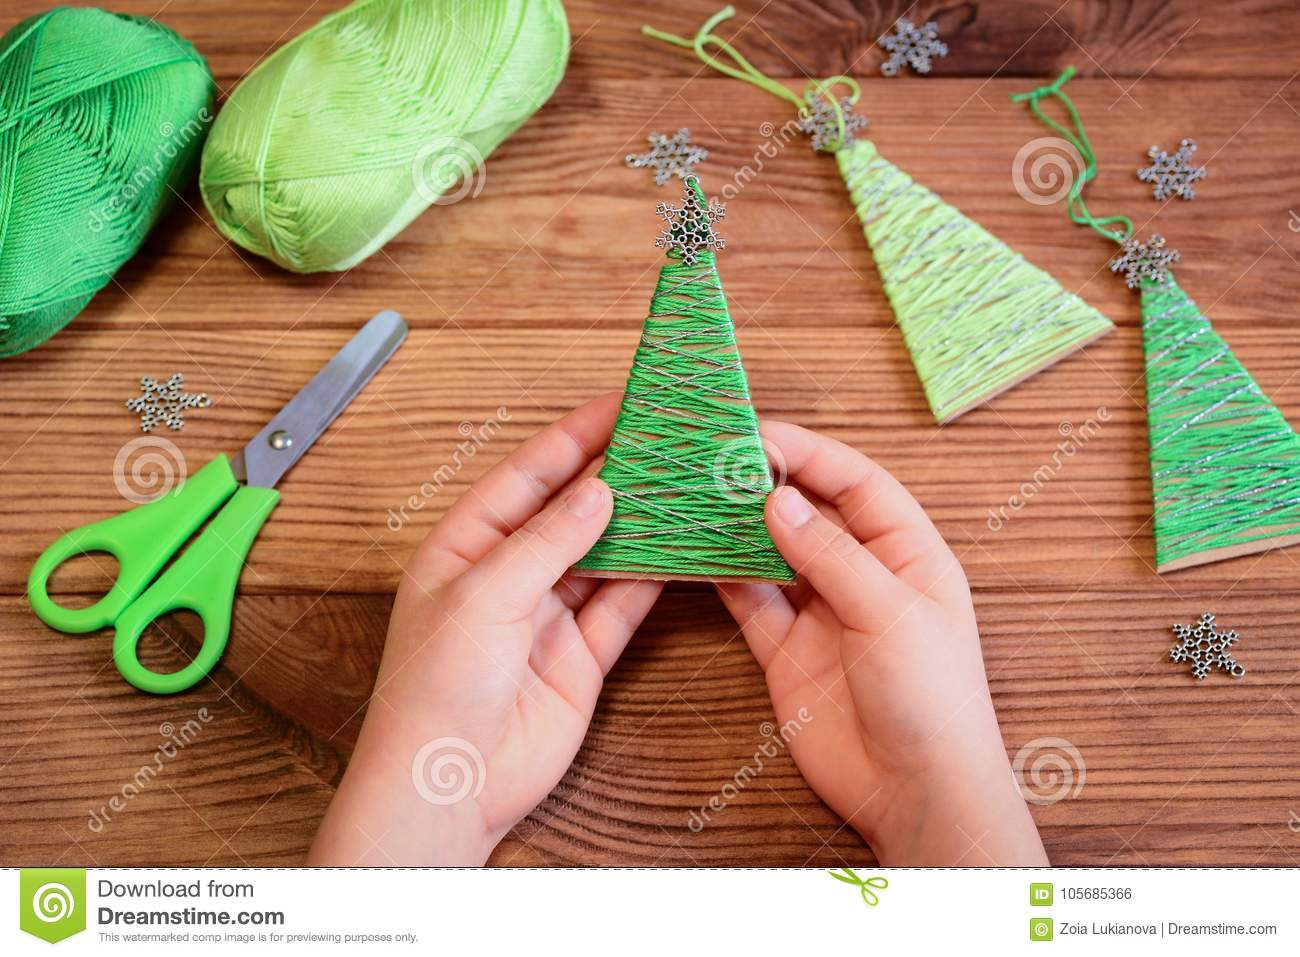 download kid is holding a christmas tree decoration in his hands kid is showing a